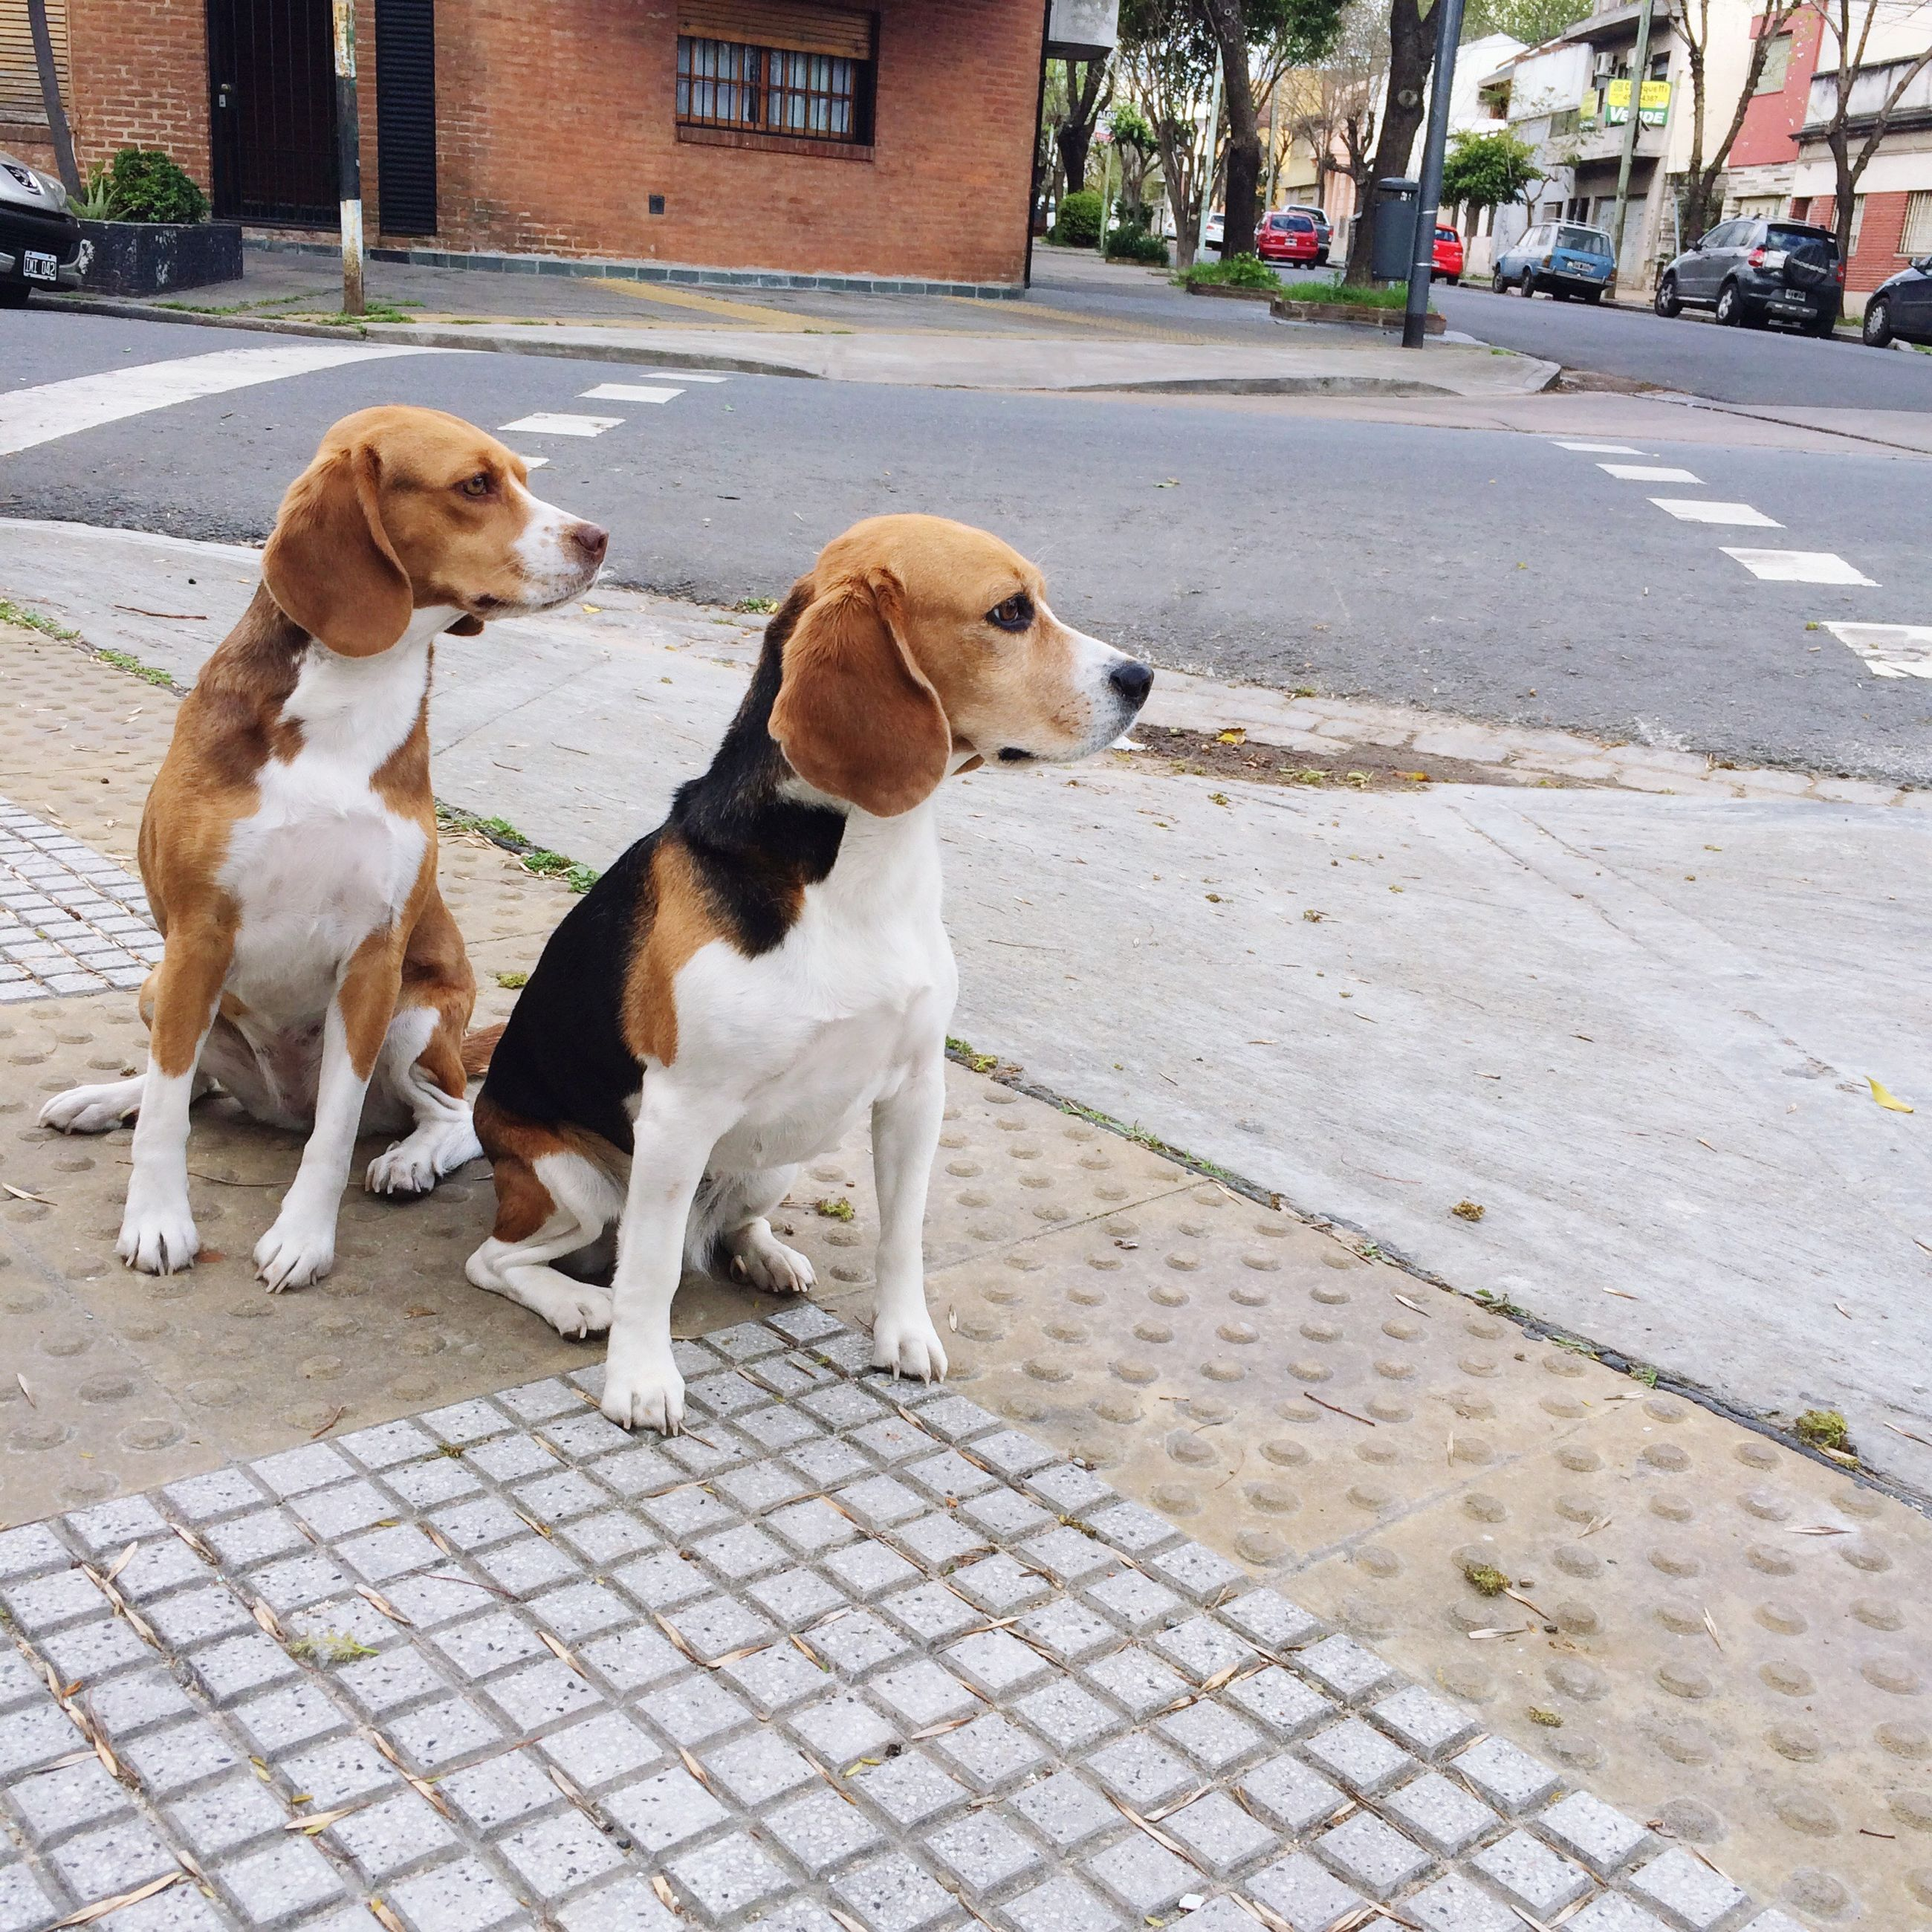 dog, domestic animals, animal themes, pets, mammal, two animals, street, city, building exterior, standing, transportation, architecture, day, outdoors, city life, footpath